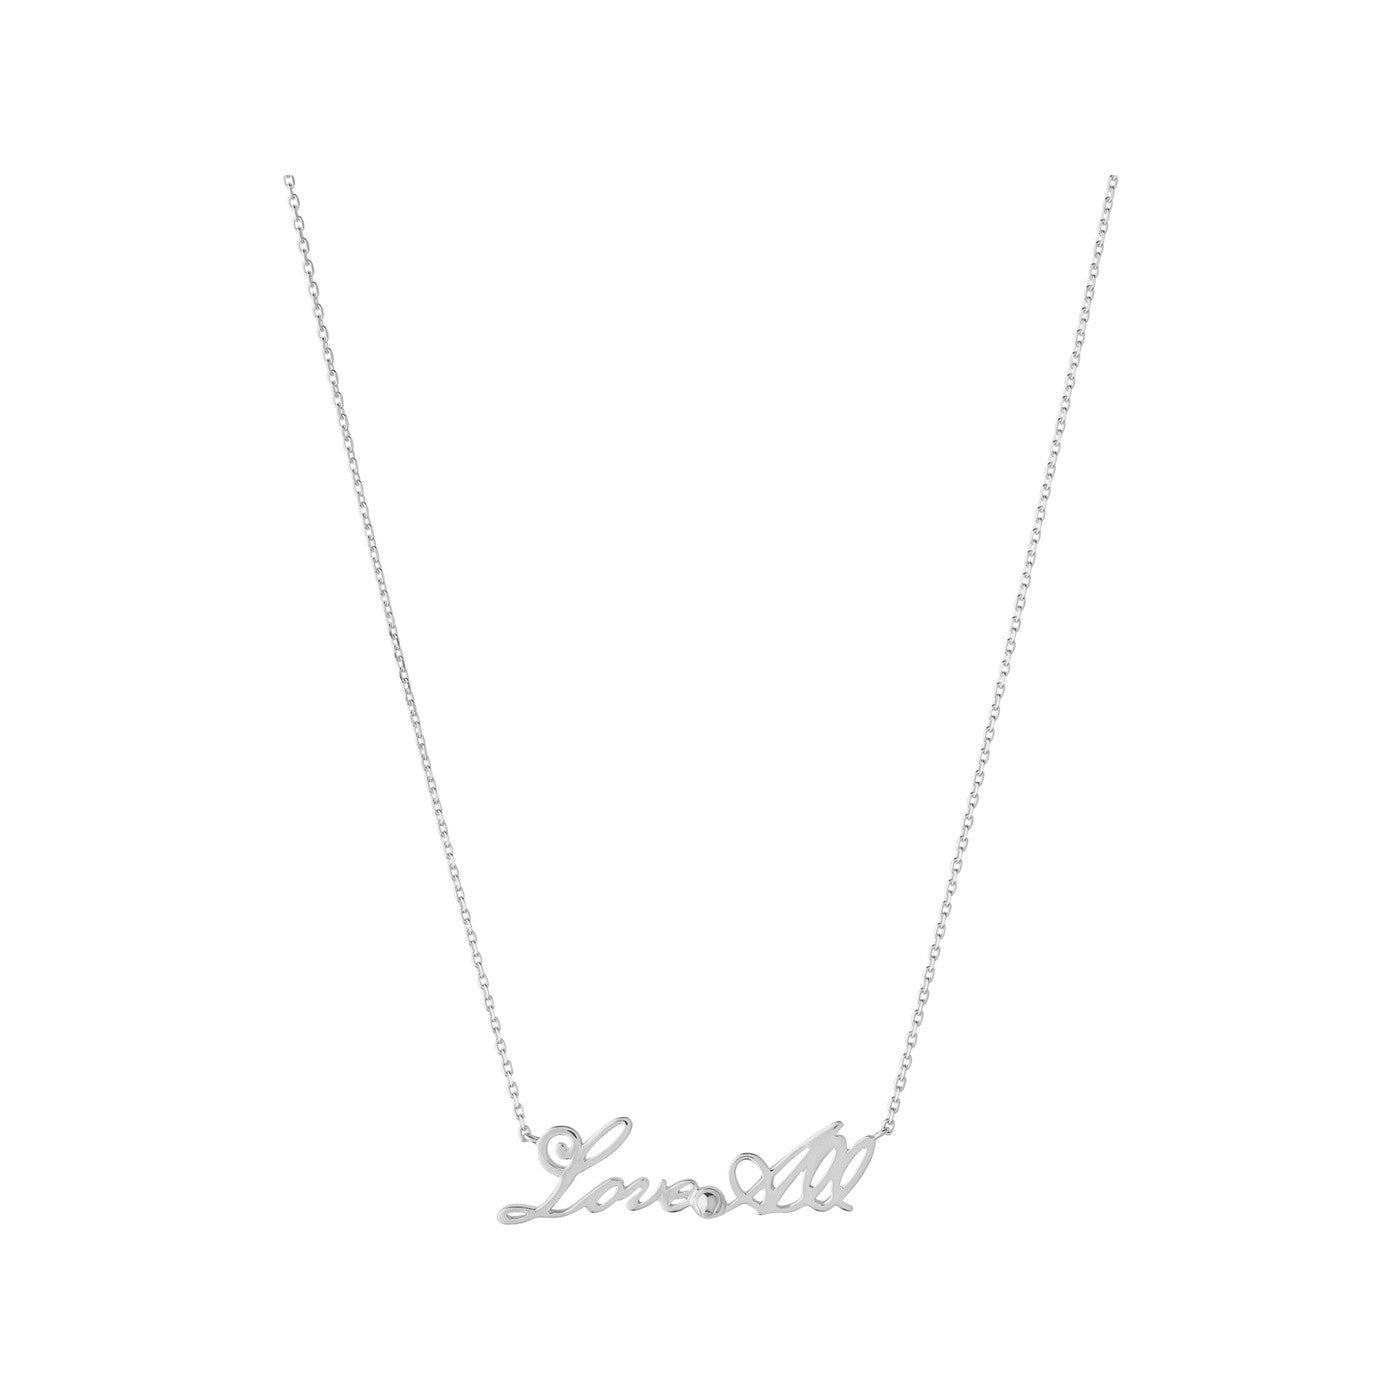 Links of London Wimbledon Love All Necklace - 5020.3095